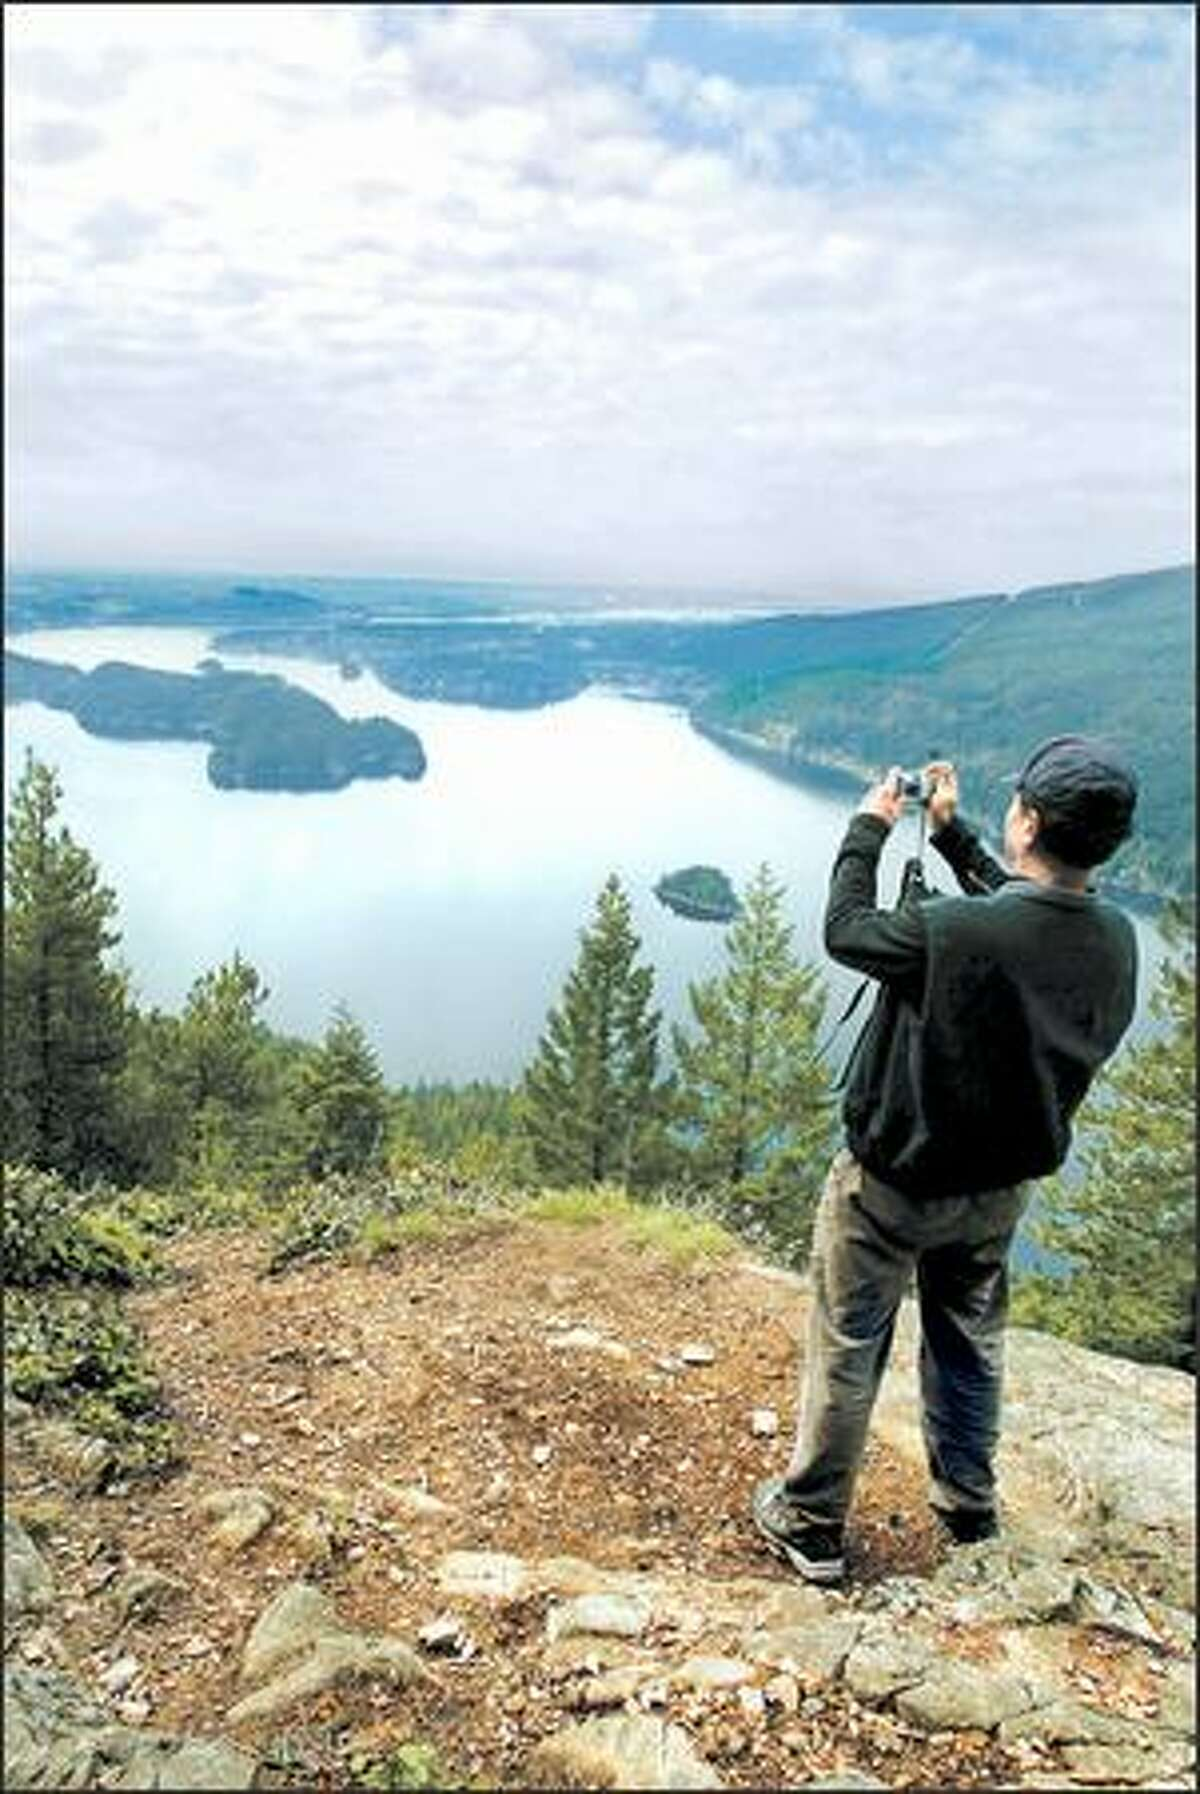 Yang Cheng of Coquitlam, B.C., frames his shot of Indian Arm, an extension of Burrard Inlet, from the Diez Vistas Trail in the Buntzen Lake Reservoir Recreation Area near Port Moody.